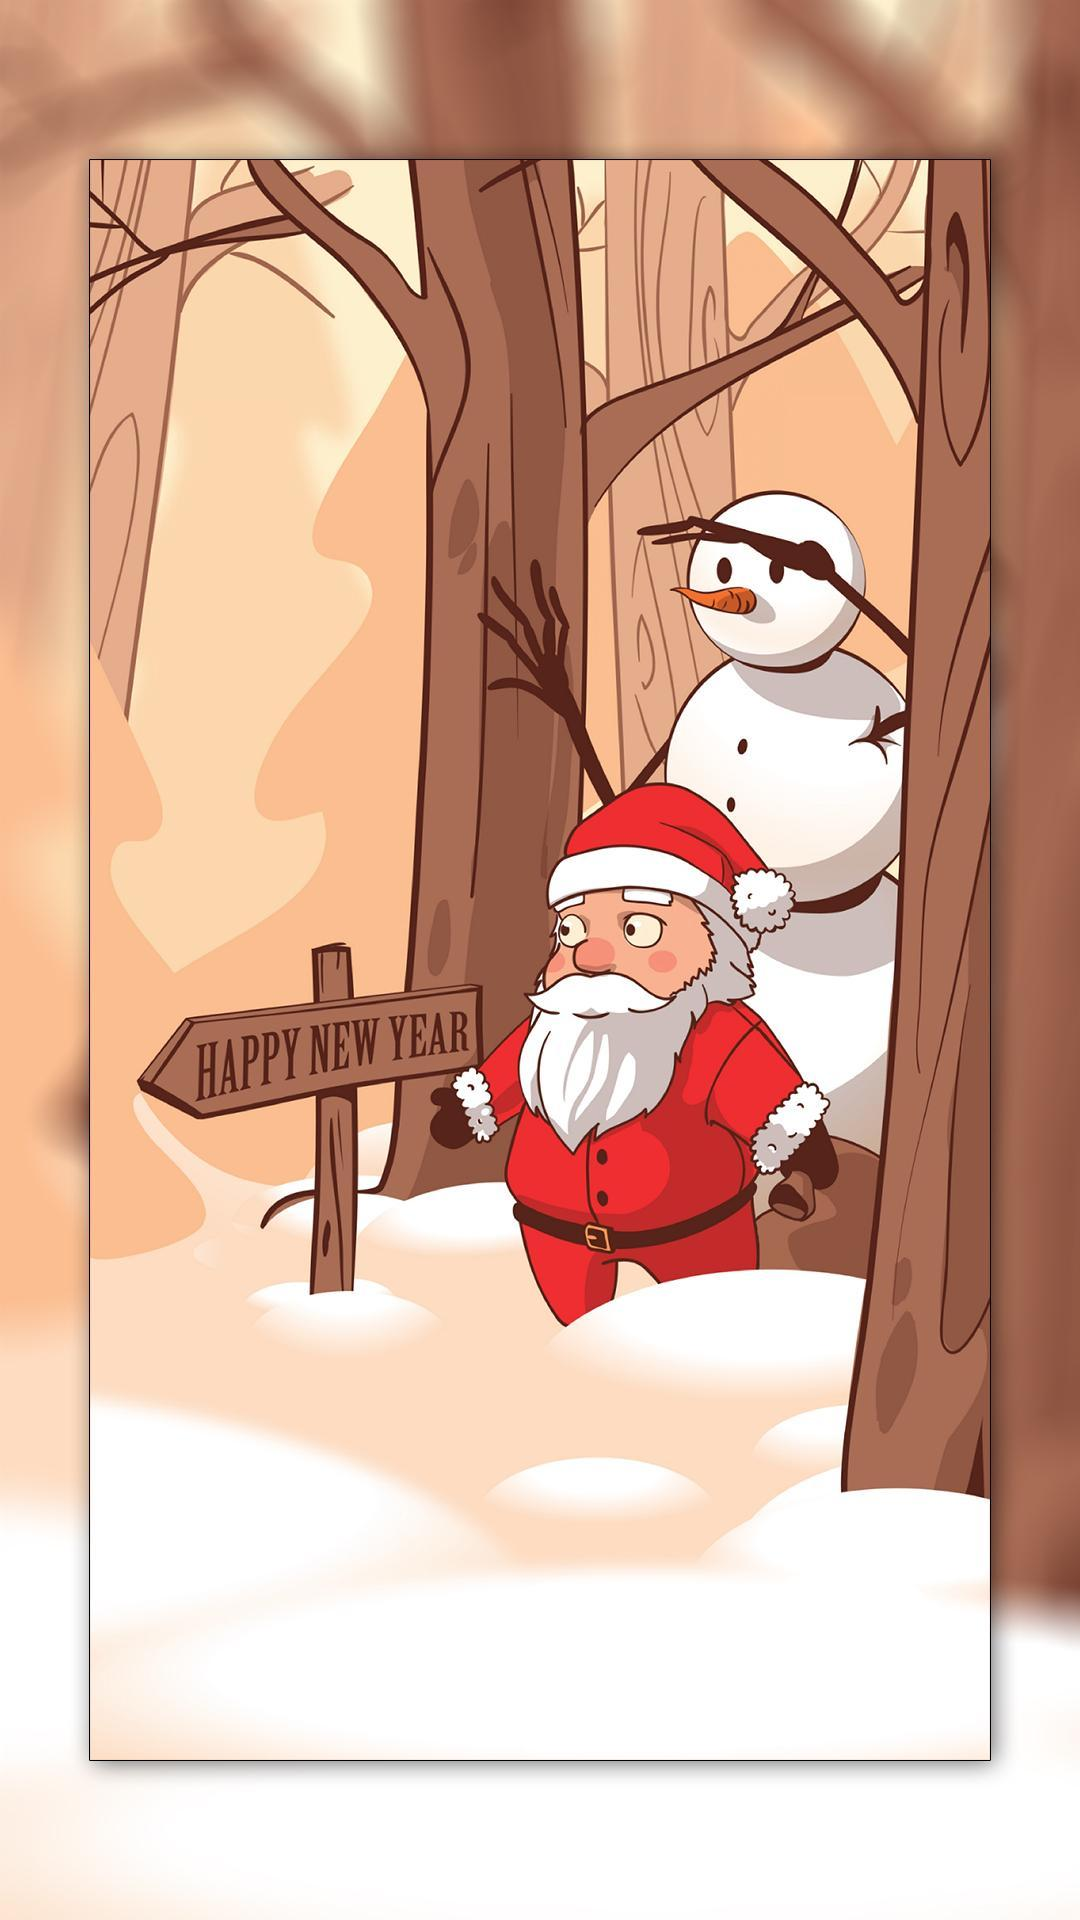 Santa Claus Wallpaper Christmas Backgrounds For Android Apk Download